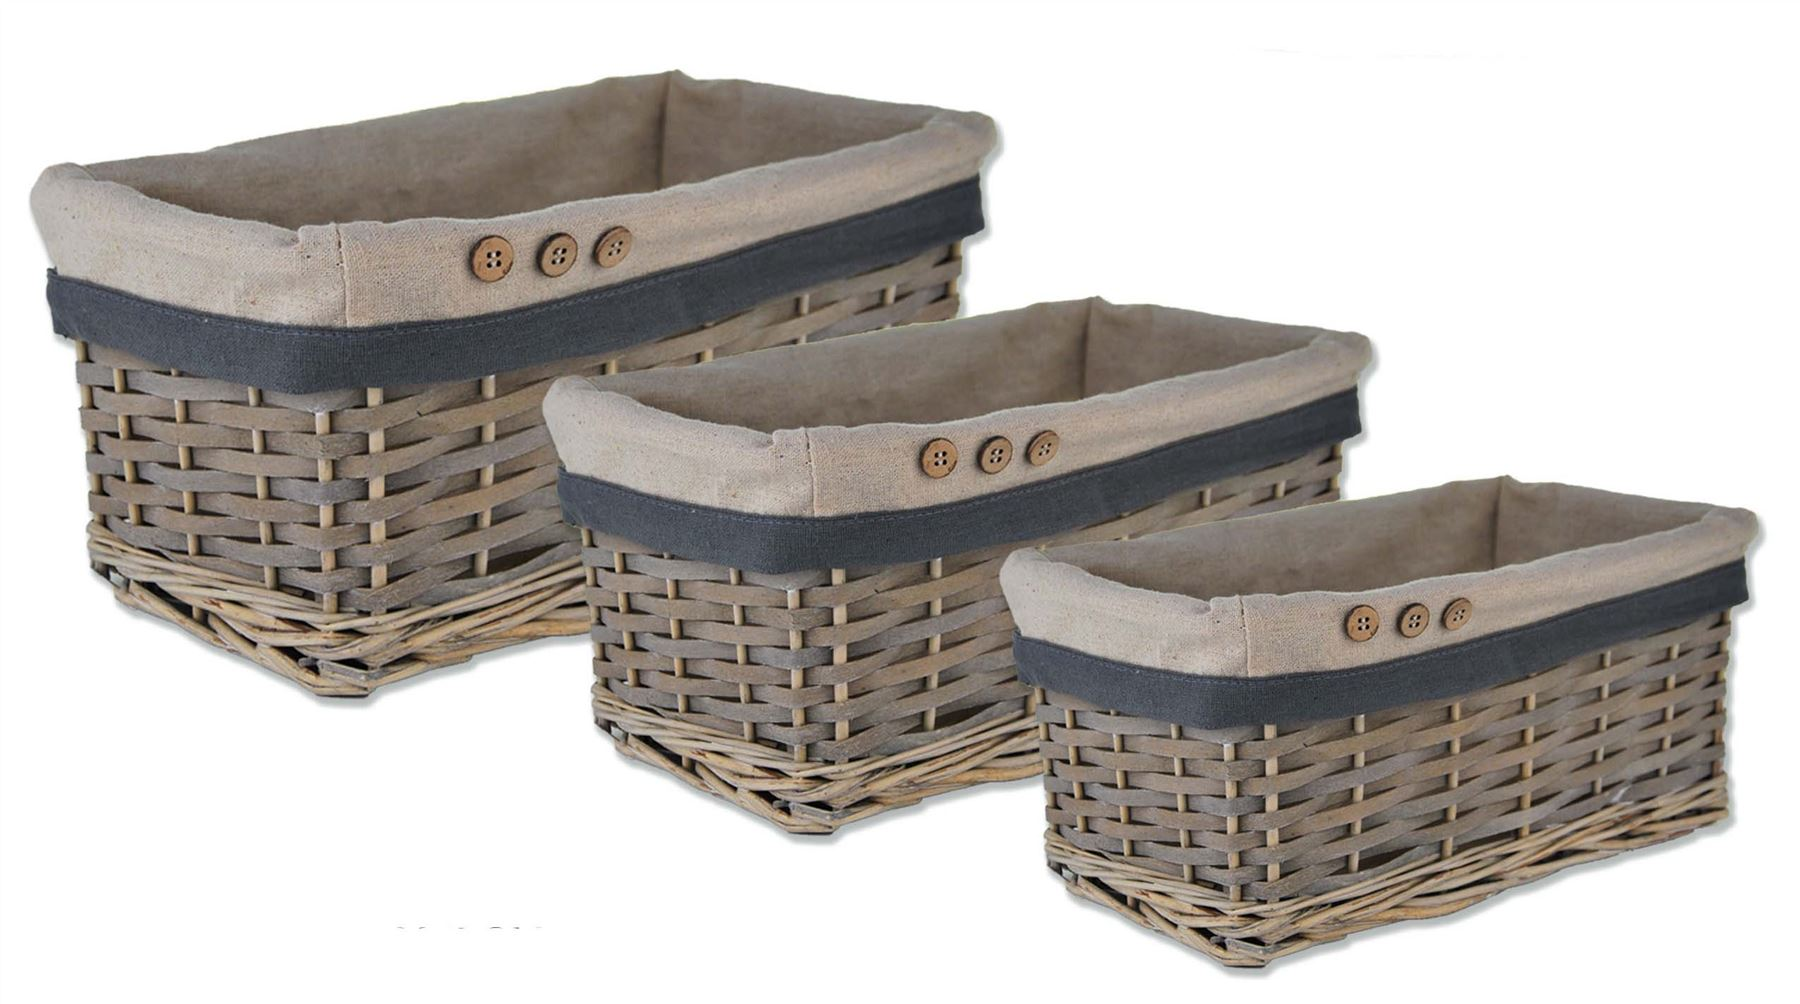 storage wicker willow lined basket bread fruit hamper. Black Bedroom Furniture Sets. Home Design Ideas